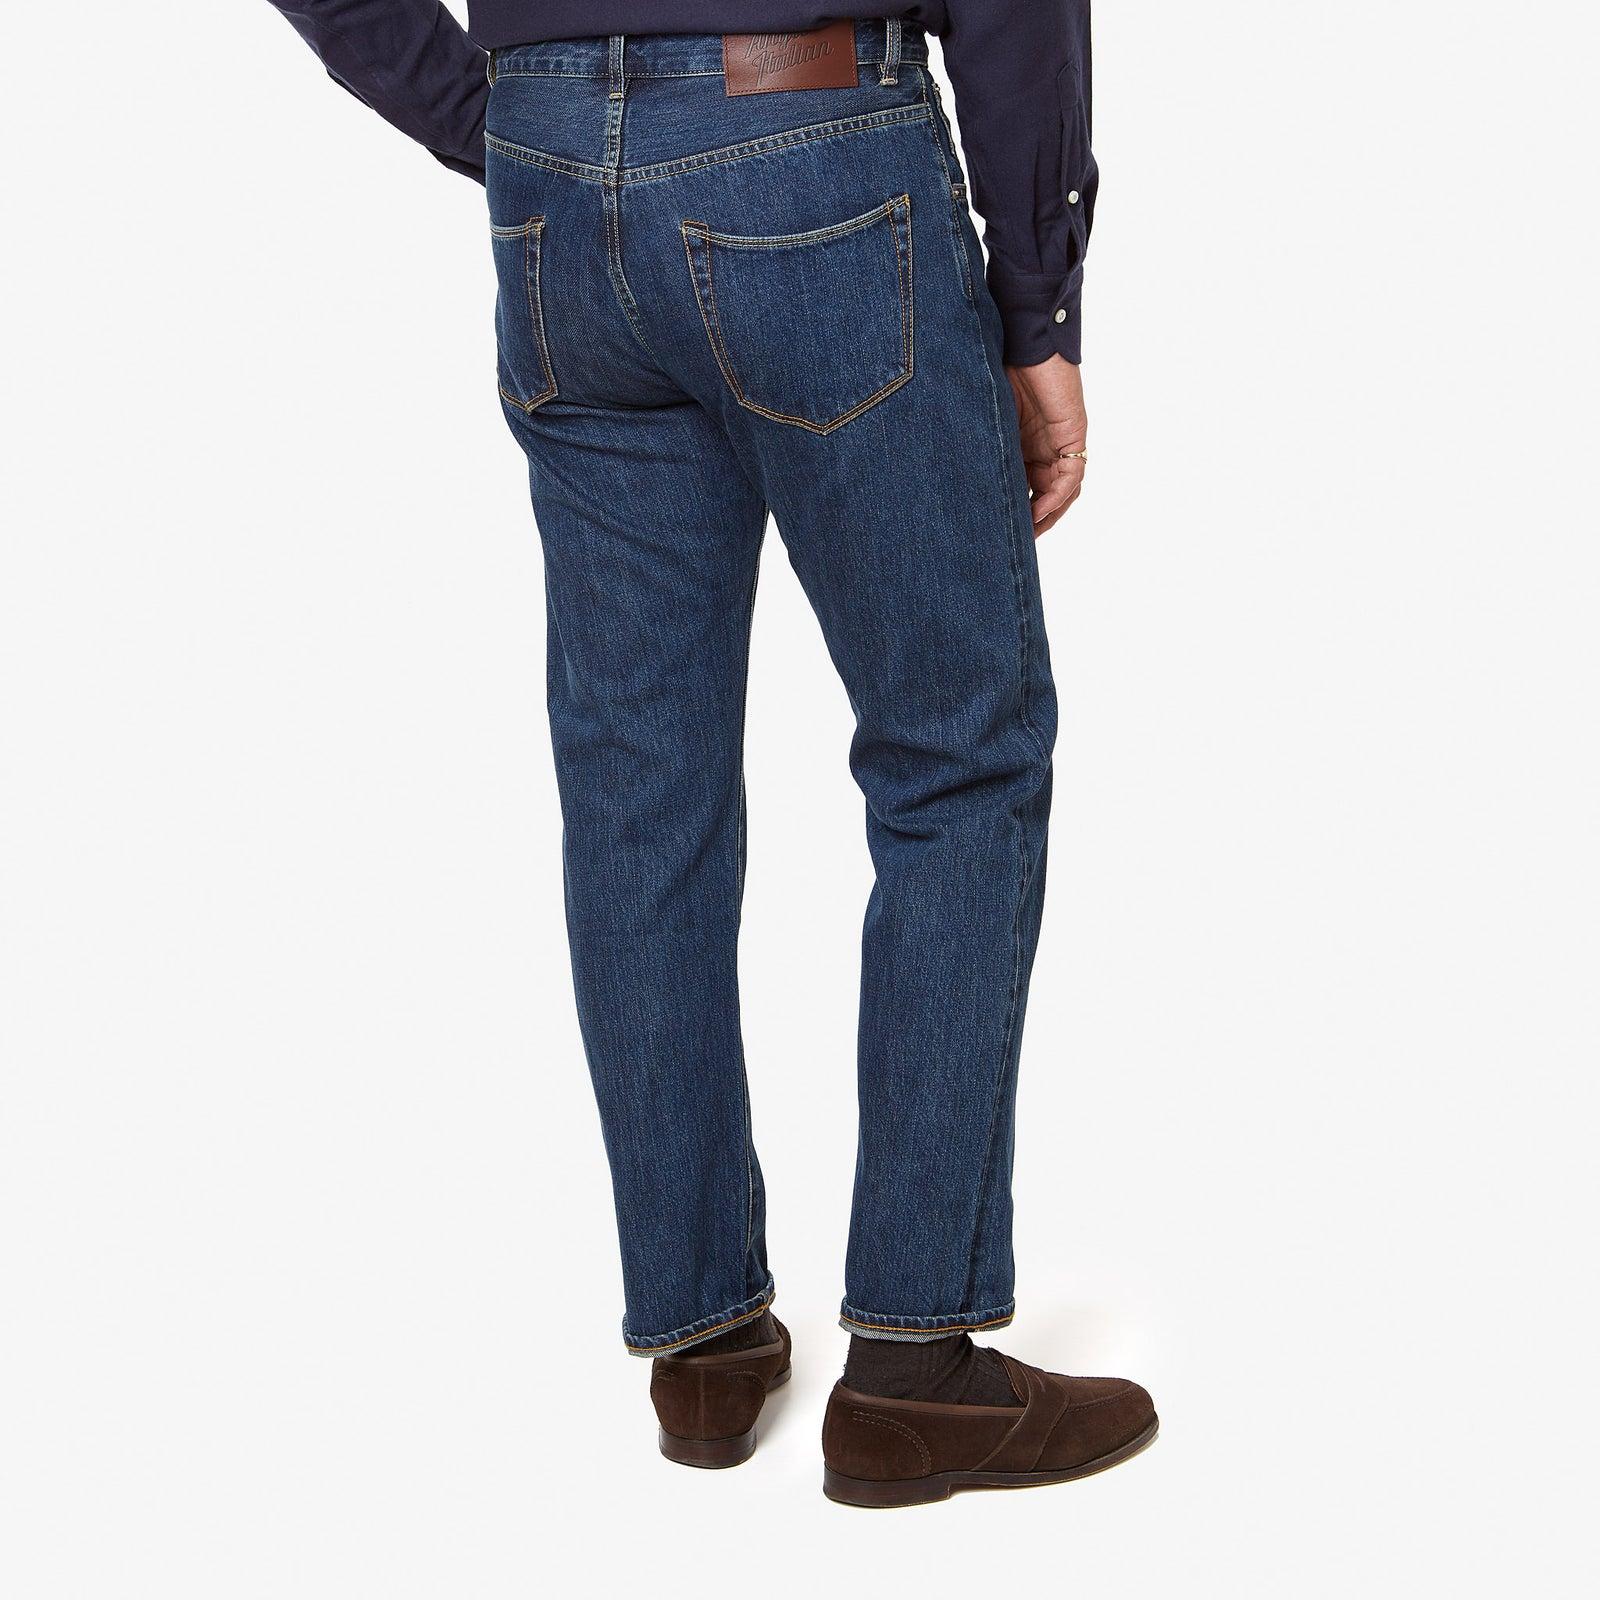 "AIC Denim Dark Wash 32"" Inseam"